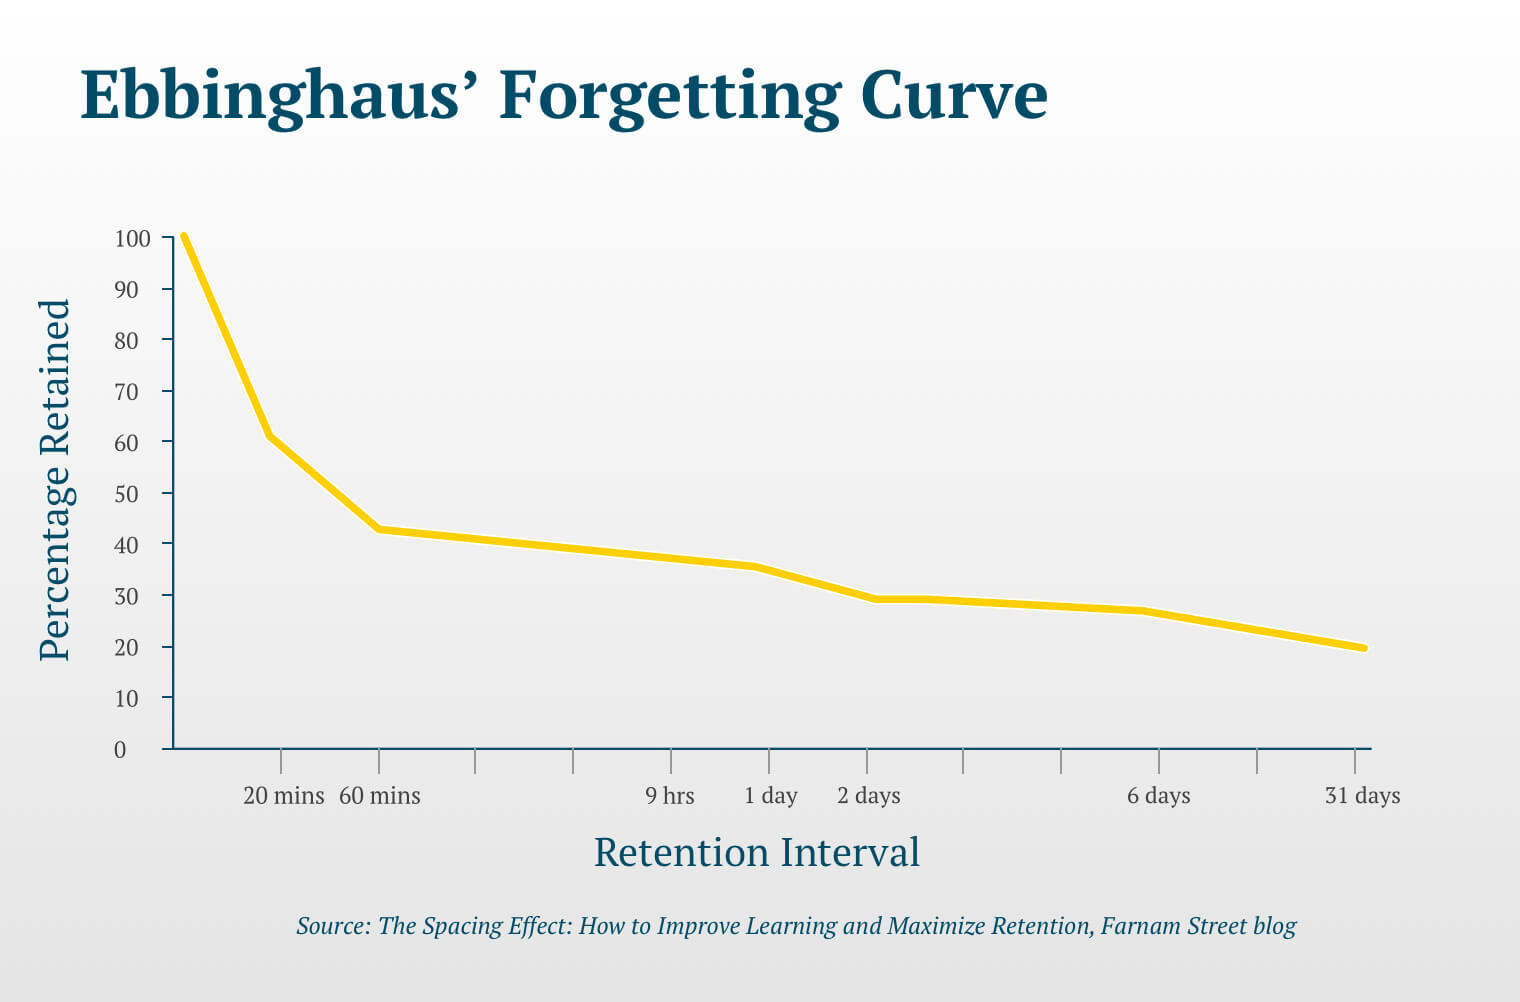 A graph demonstrating the rate at which information is forgotten. Vertical (y) axis: Percentage retained on a scale from 0 to 100; Horizontal (x) axis represents the retention interval and ranges from 20 minutes to 31 days. A steep drop from 100 to 40% retention occurs between 20 and 60 minutes followed by a gradual decline between 60 minutes and 31 days with only 10% retention remaining at the 31 day mark.